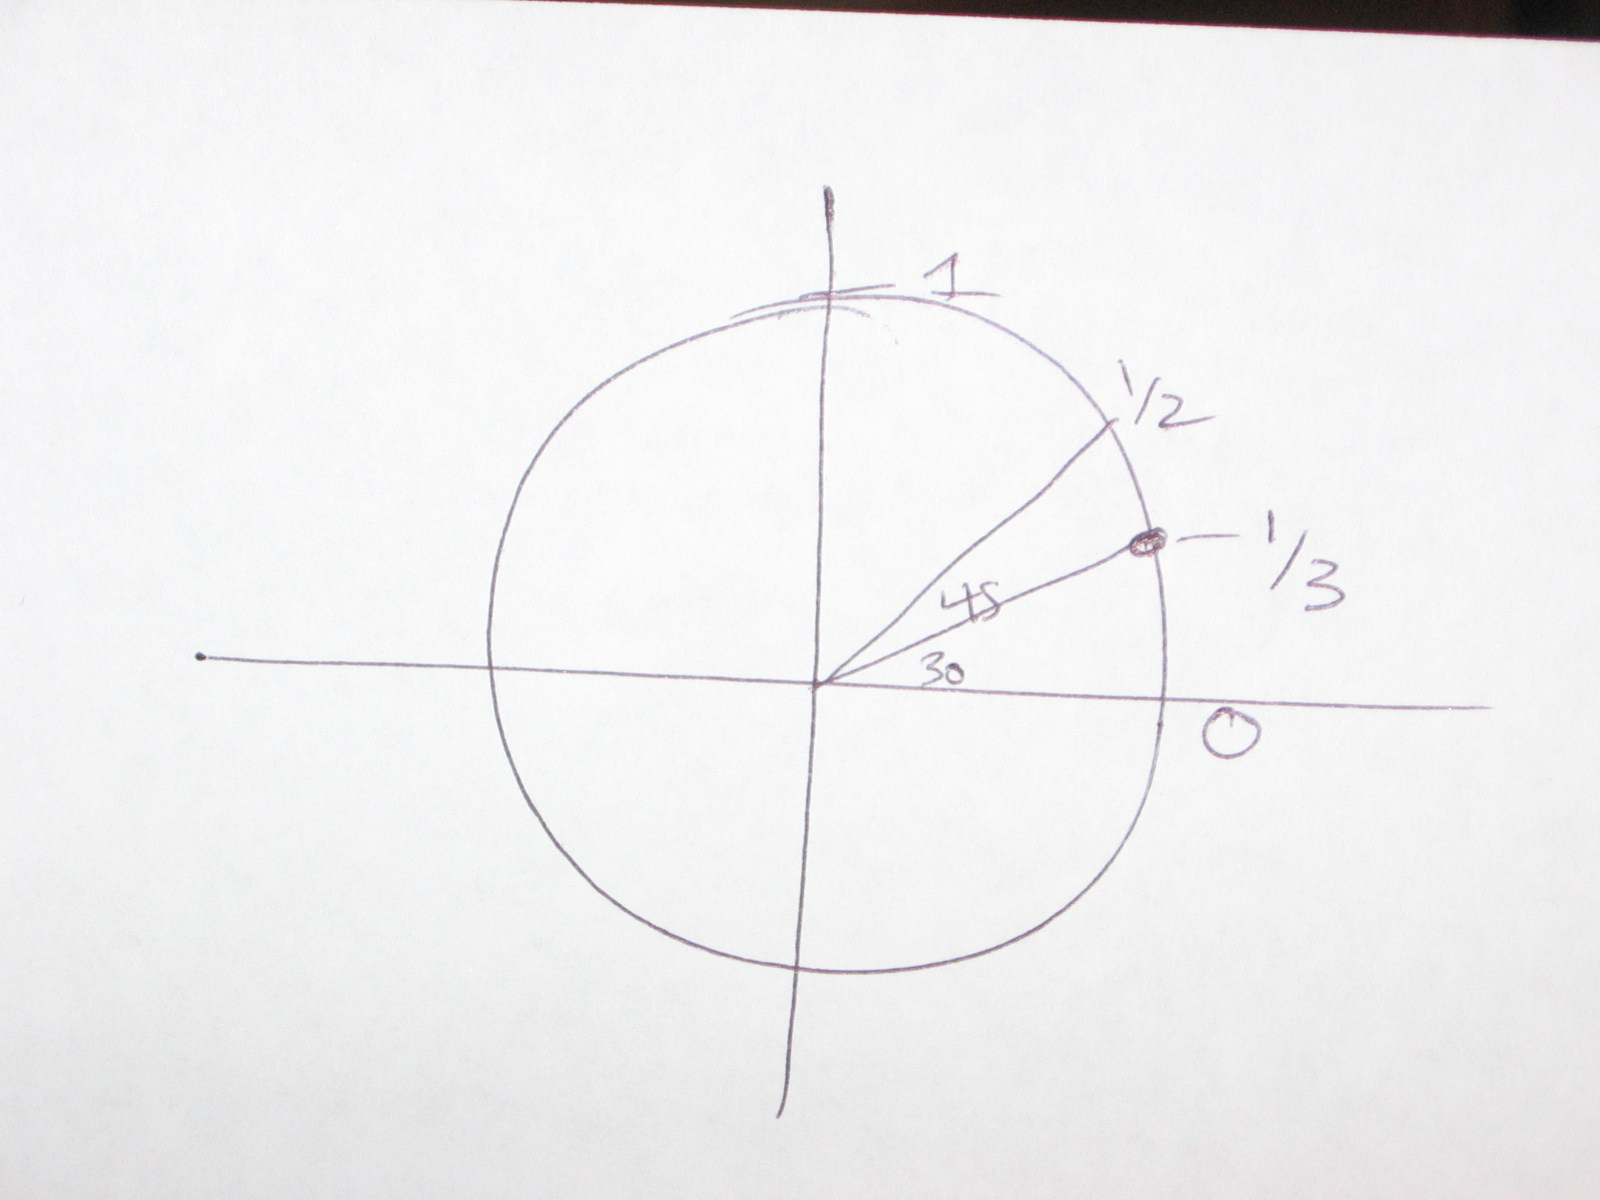 how to find the exact value of a trigonometric function